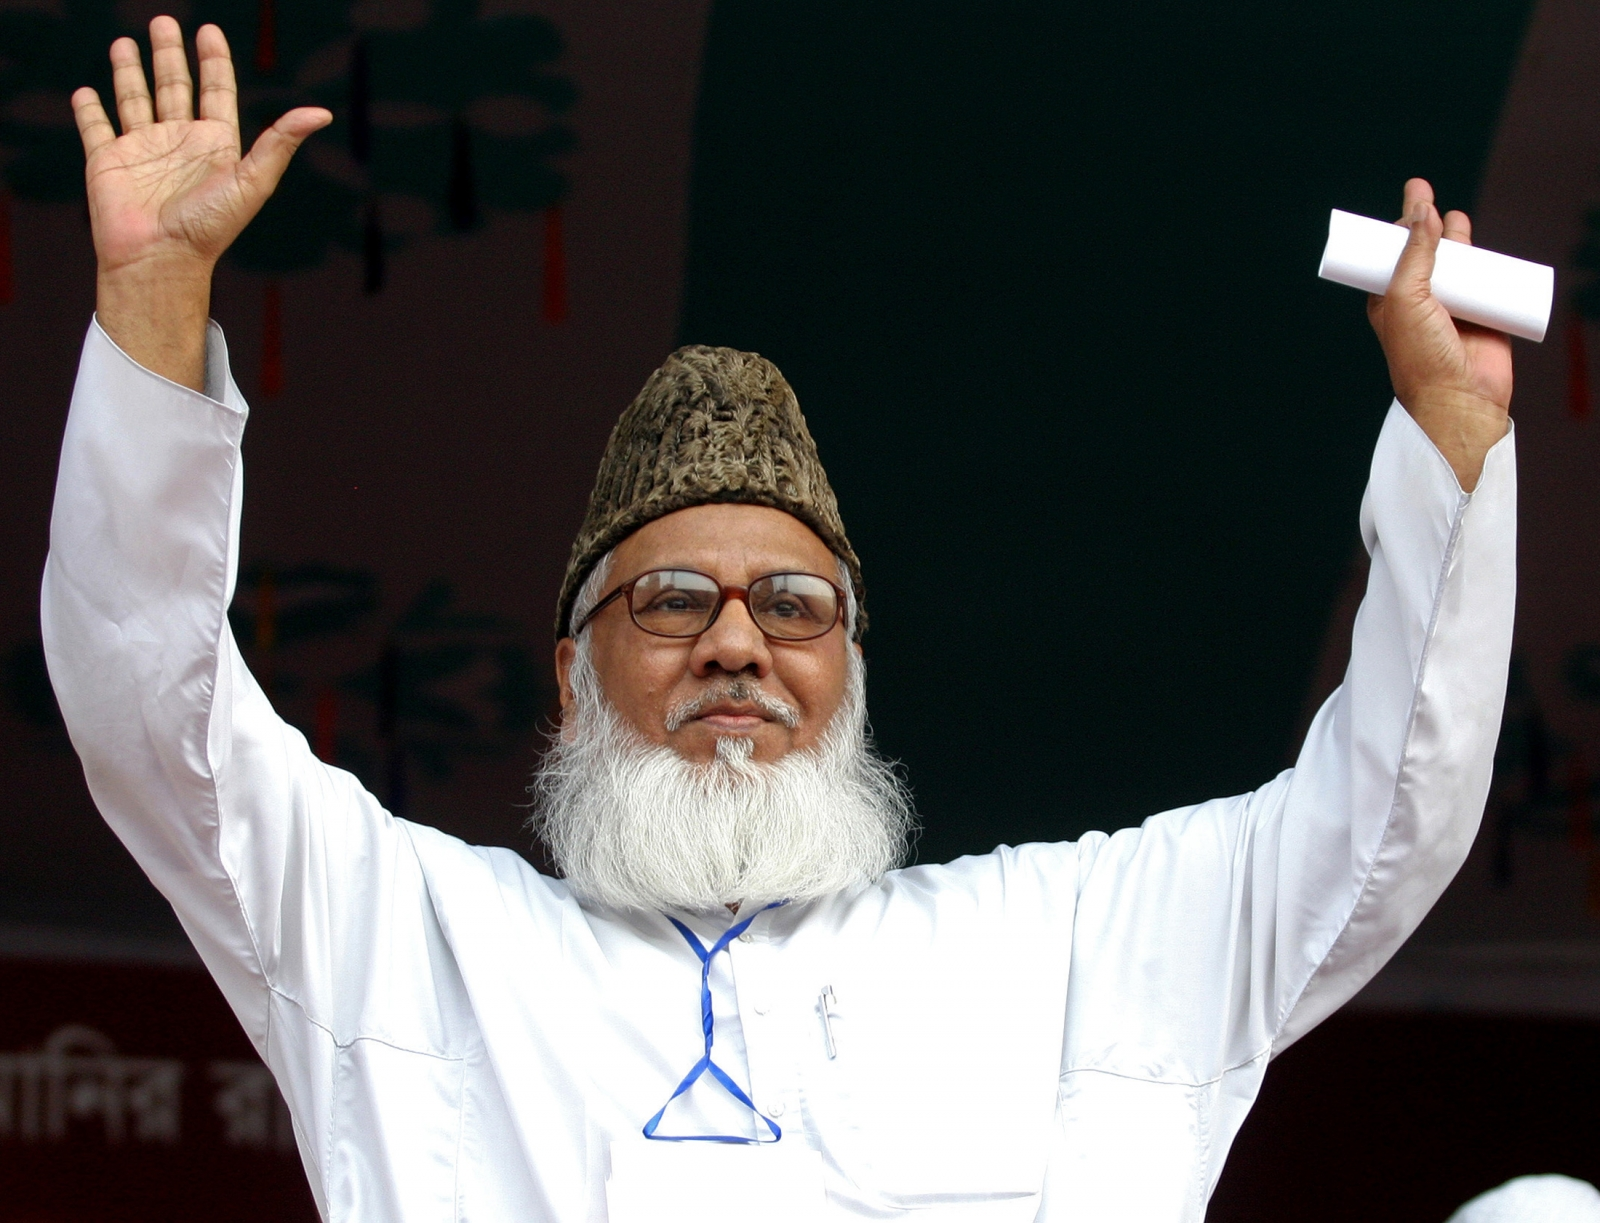 Bangladesh gives death penalty to Islamist leader for war crimes